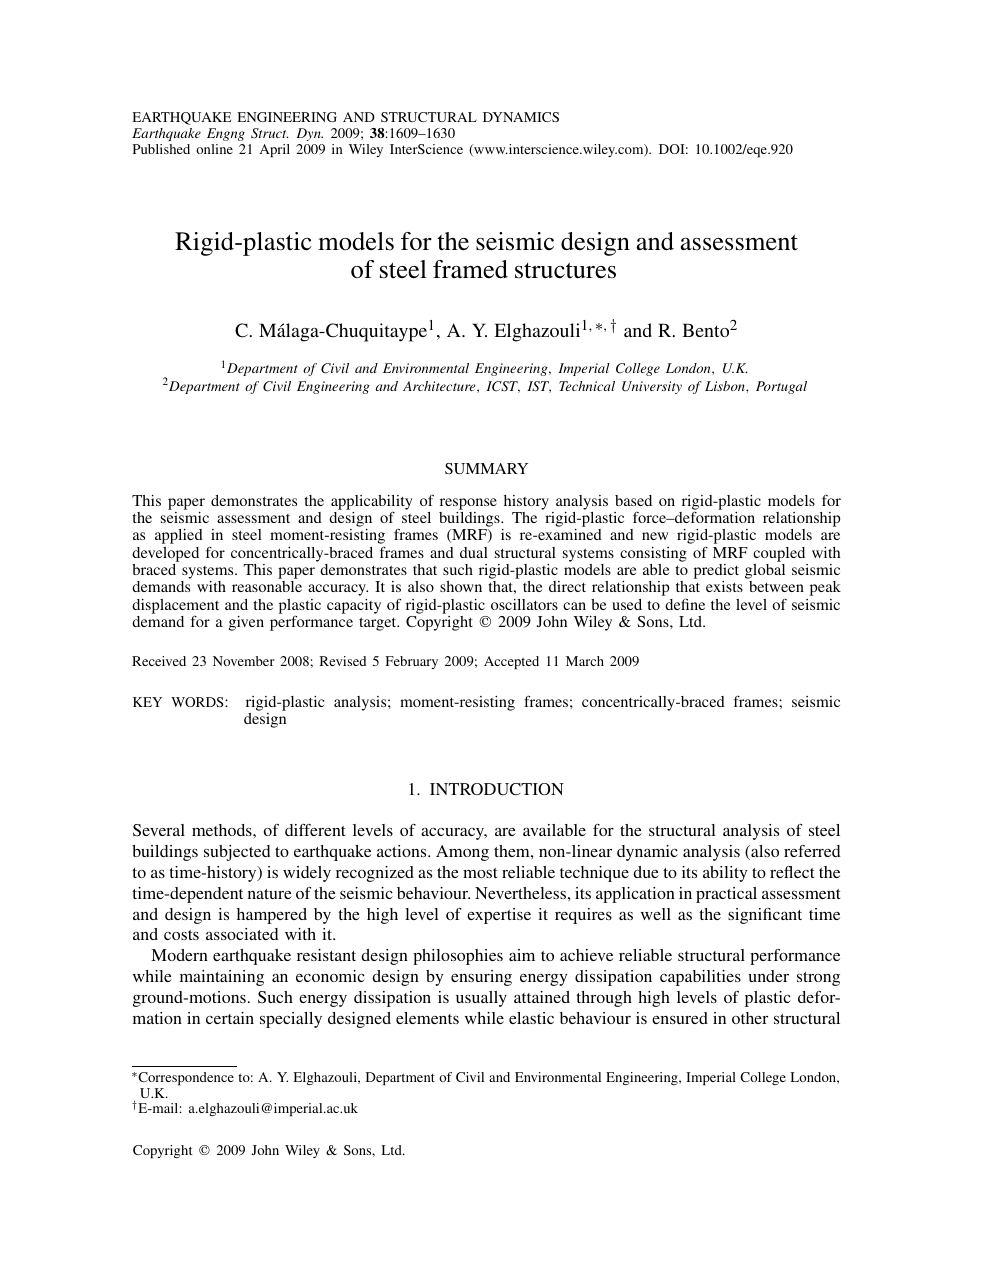 Rigid-plastic models for the seismic design and assessment